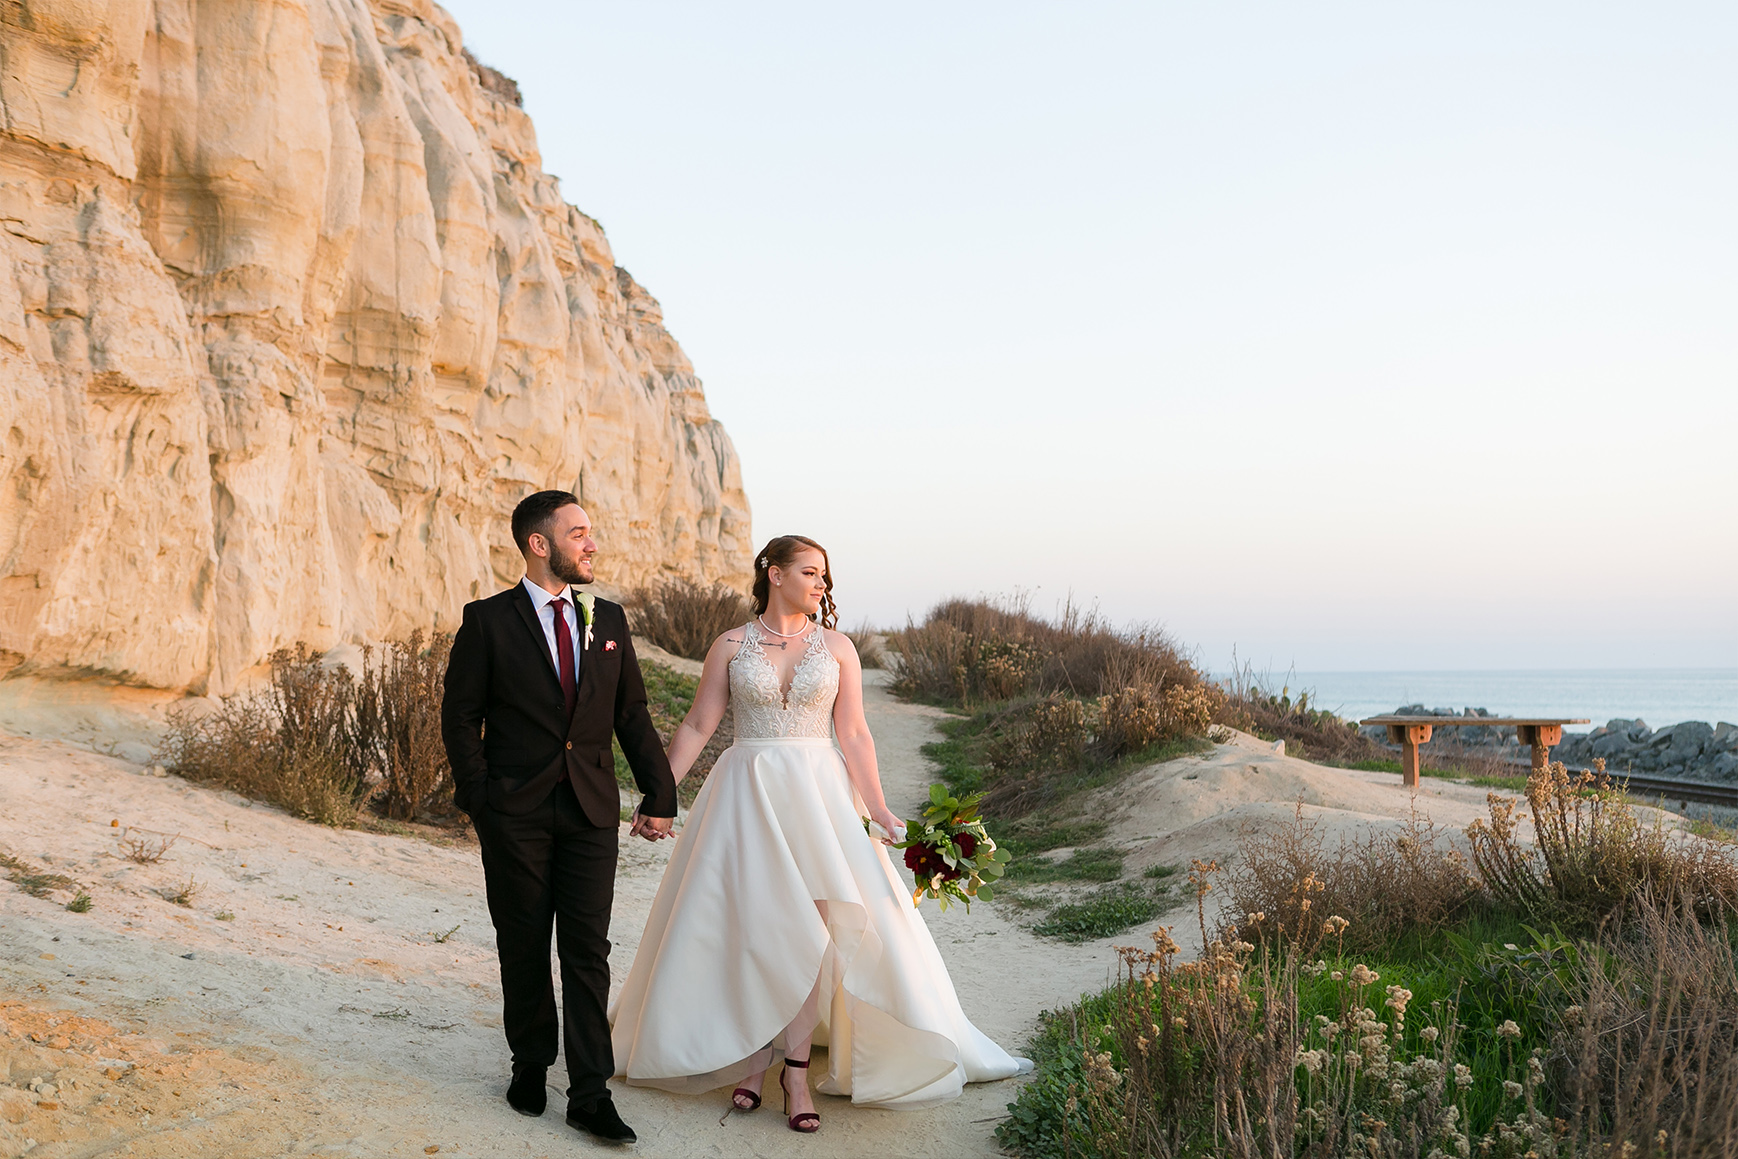 Couple on the beach - San Clemente - San Clemente, California - Orange County - Wedgewood Weddings